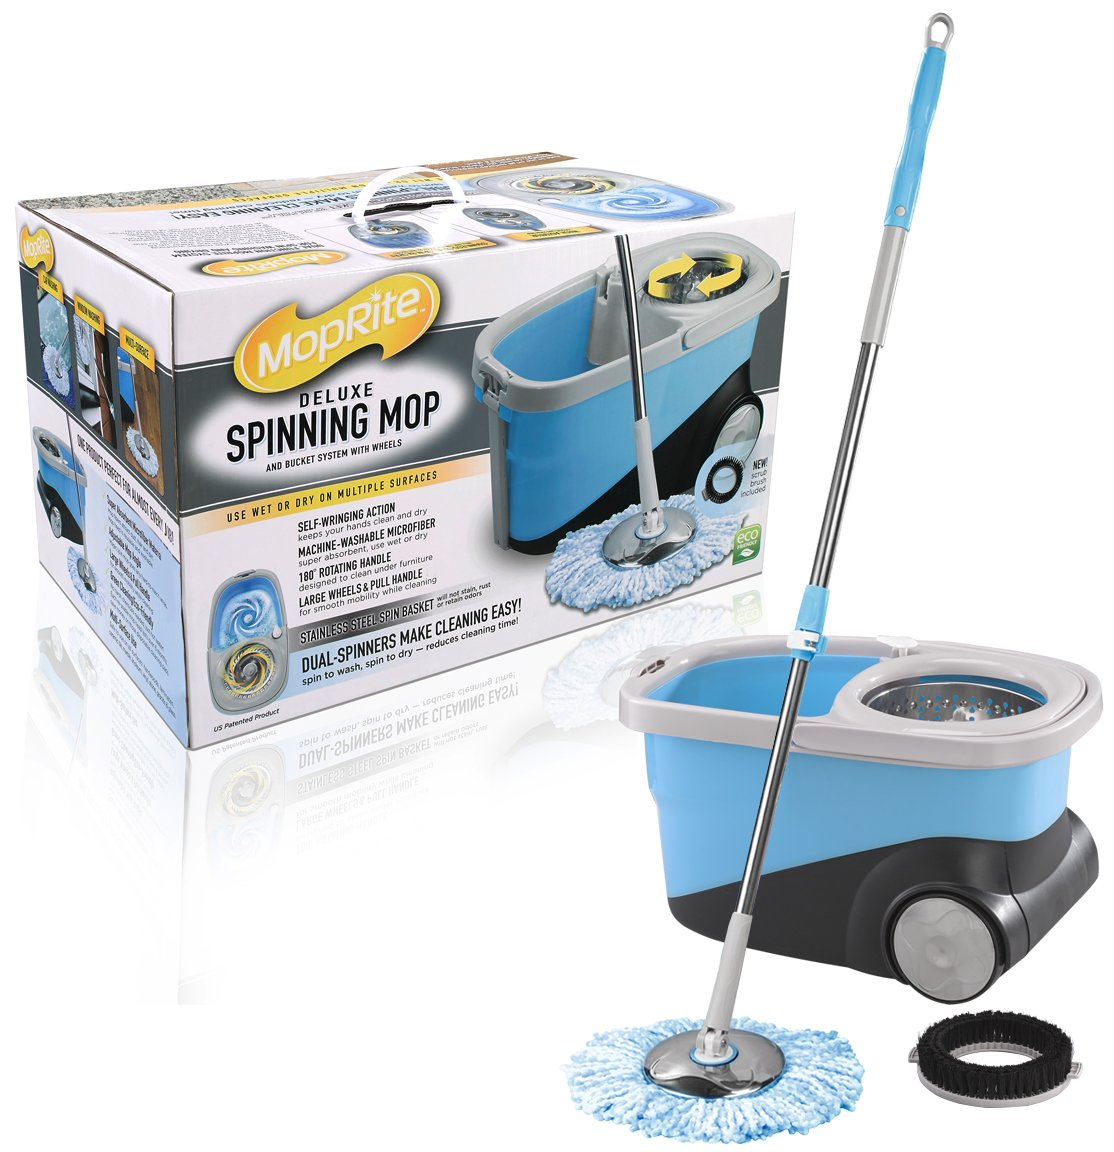 trying-mop-right-moprite-spin-mop-1